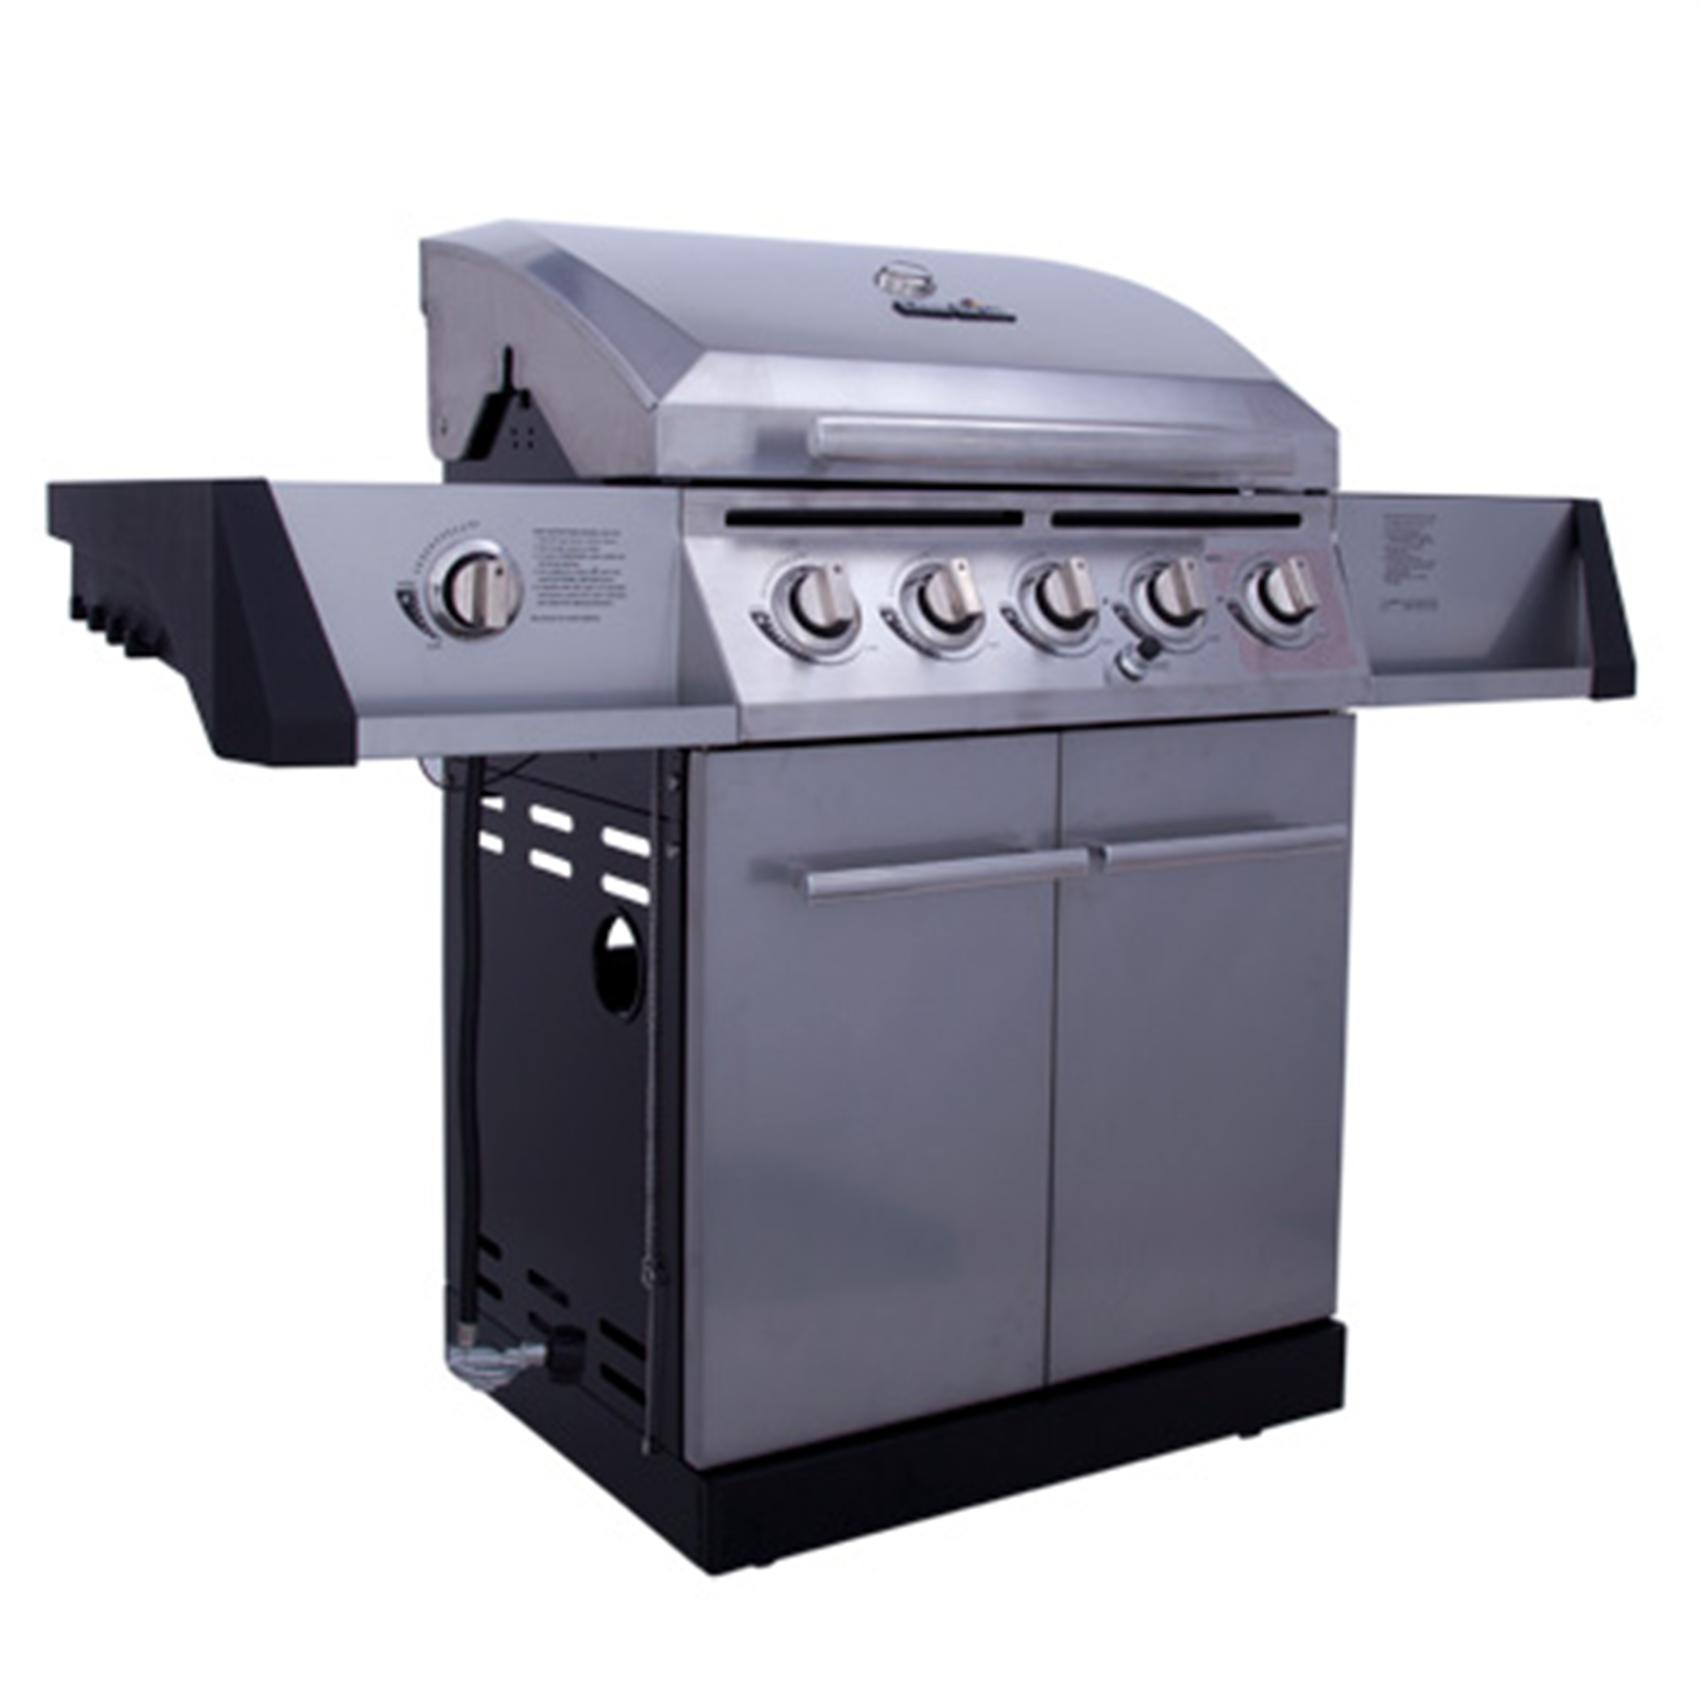 Char Broil 5 Burner Gas Grill Char Review Char Char